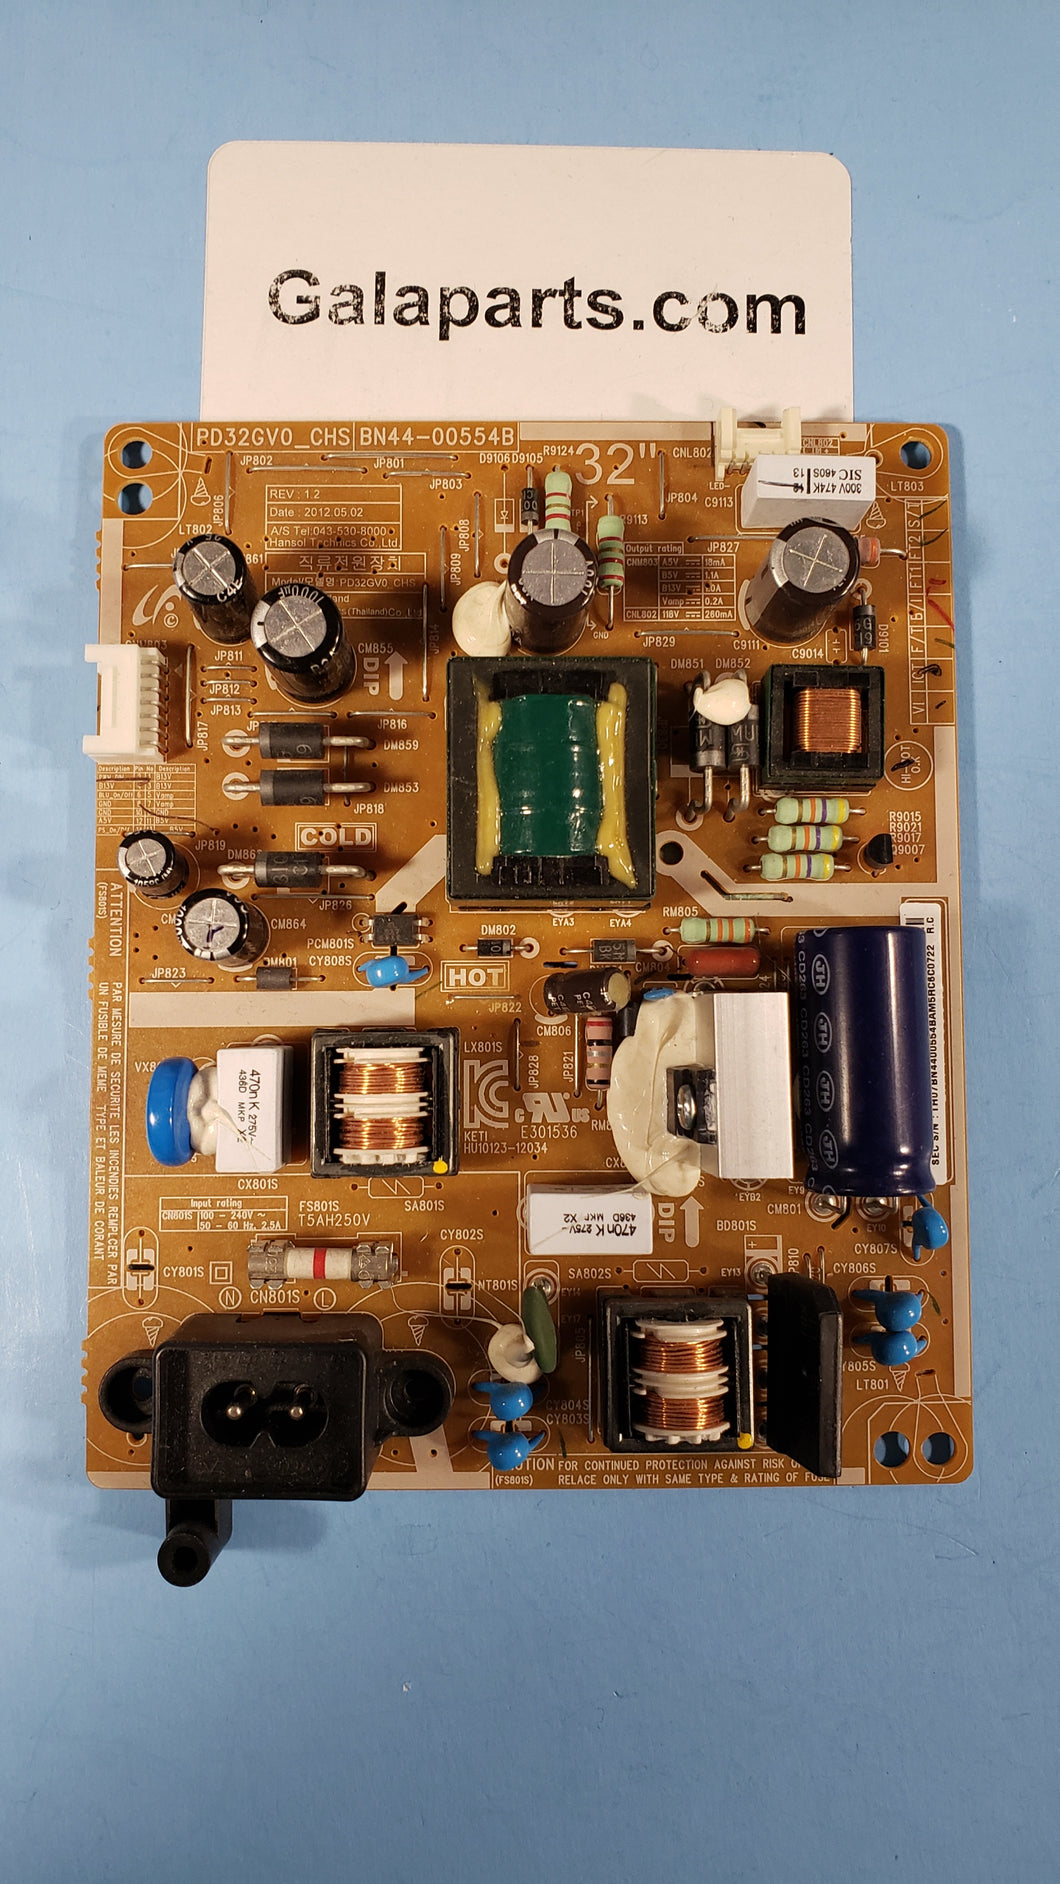 BN44-00554B PD32GV0_CHS UN32EH4003F POWER BOARD SAMSUNG - Electronics TV Parts - GalaParts.com